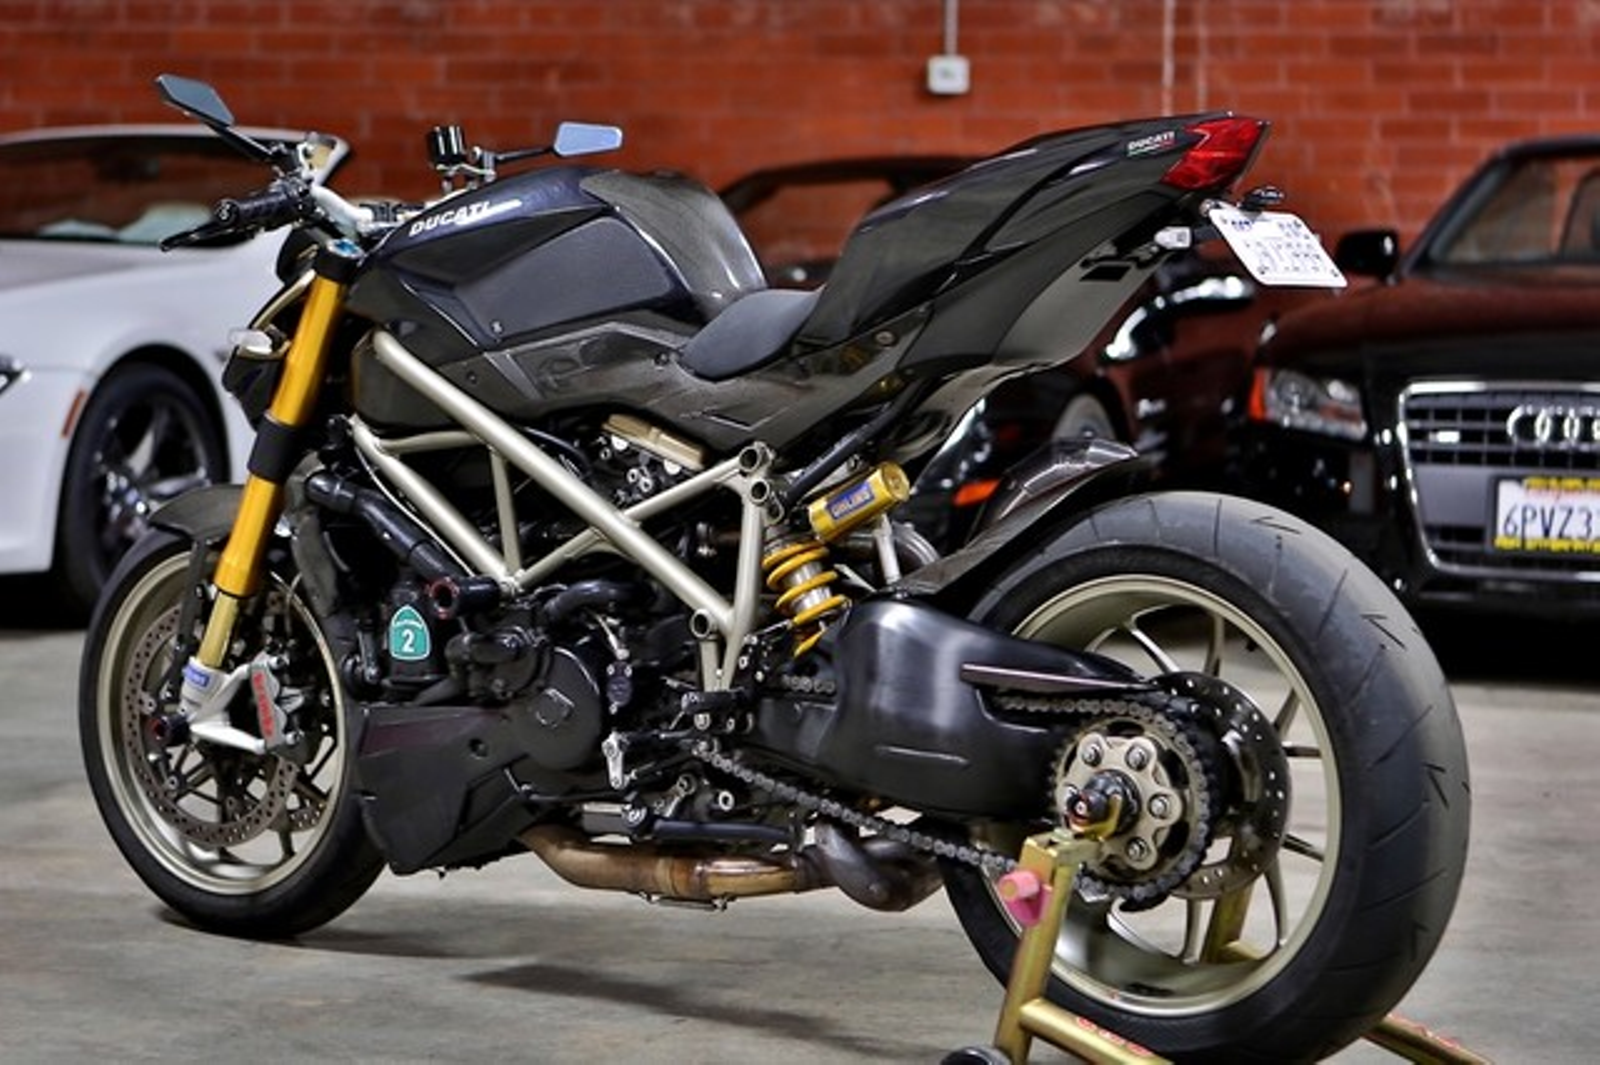 Used Ducati Streetfighter Price